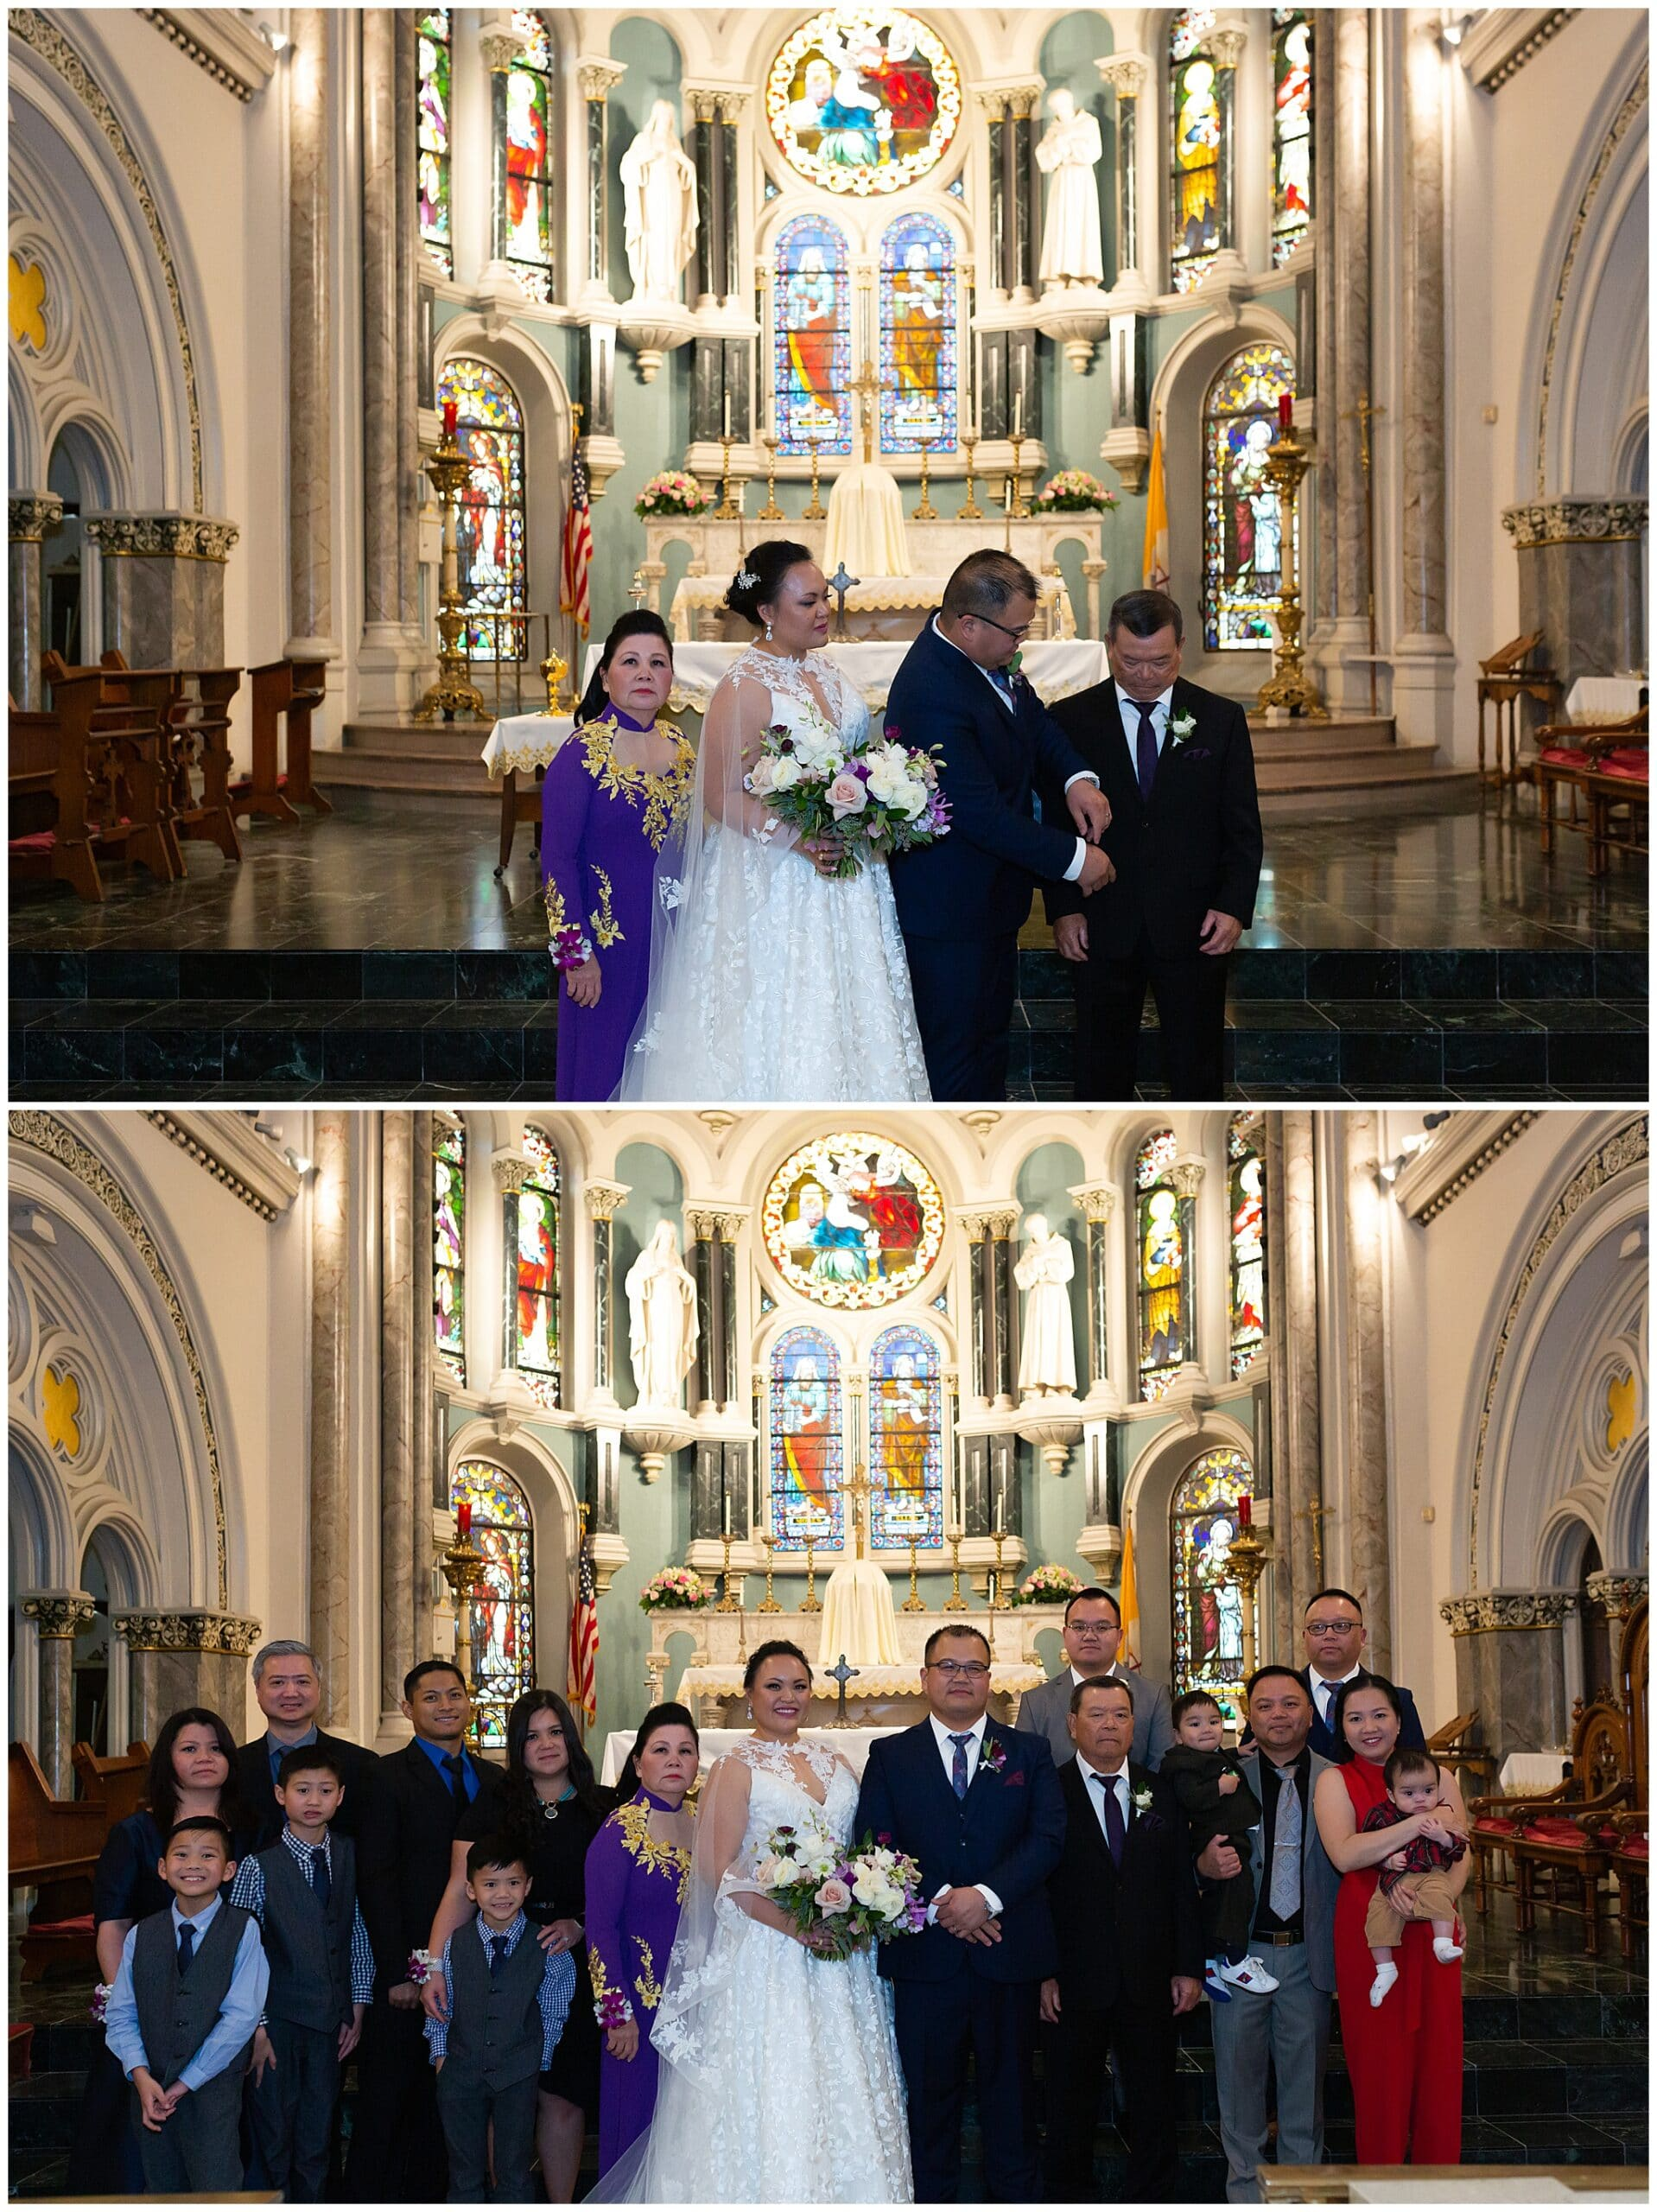 family photos at the end of their wedding ceremony at Annunciation Catholic Church in Houston TX by Swish and Click Photography